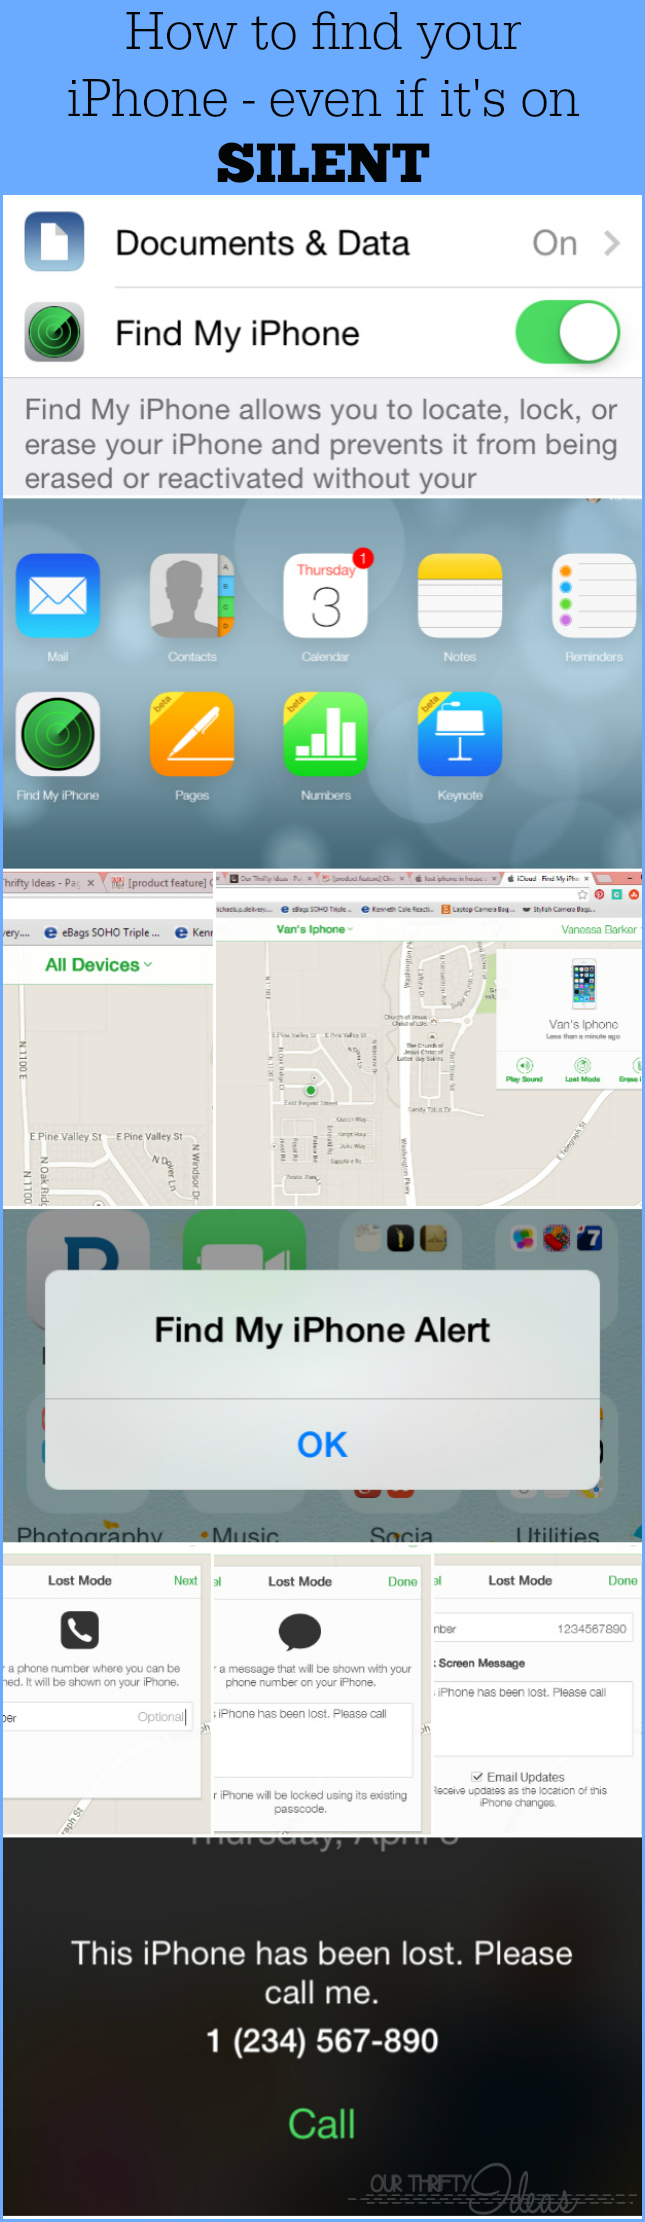 how to find a lost iphone find your lost iphone even when it s on silent and lost 2312